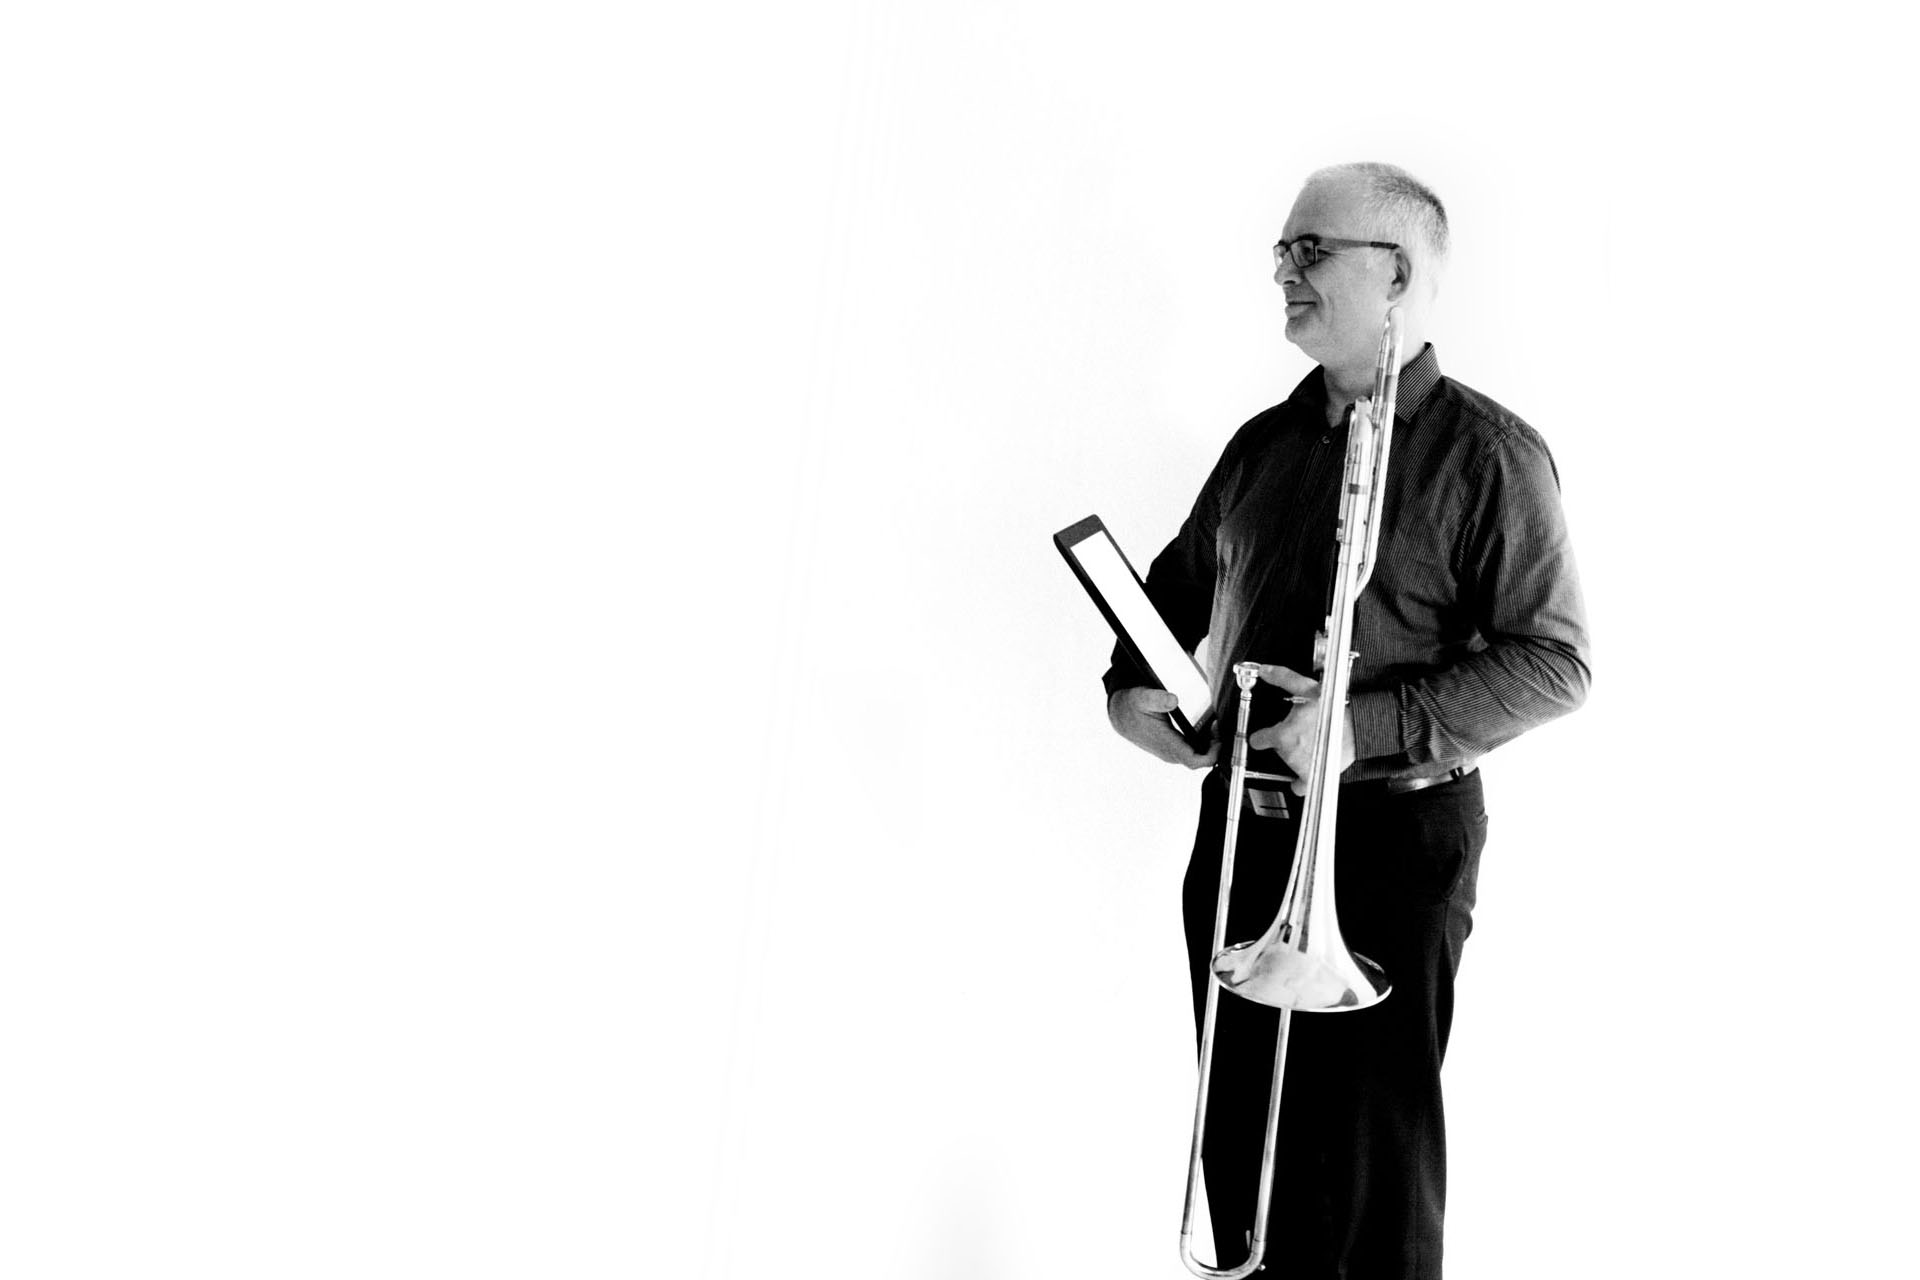 Jan Rosseel, founder of Scora with tablet and trombone